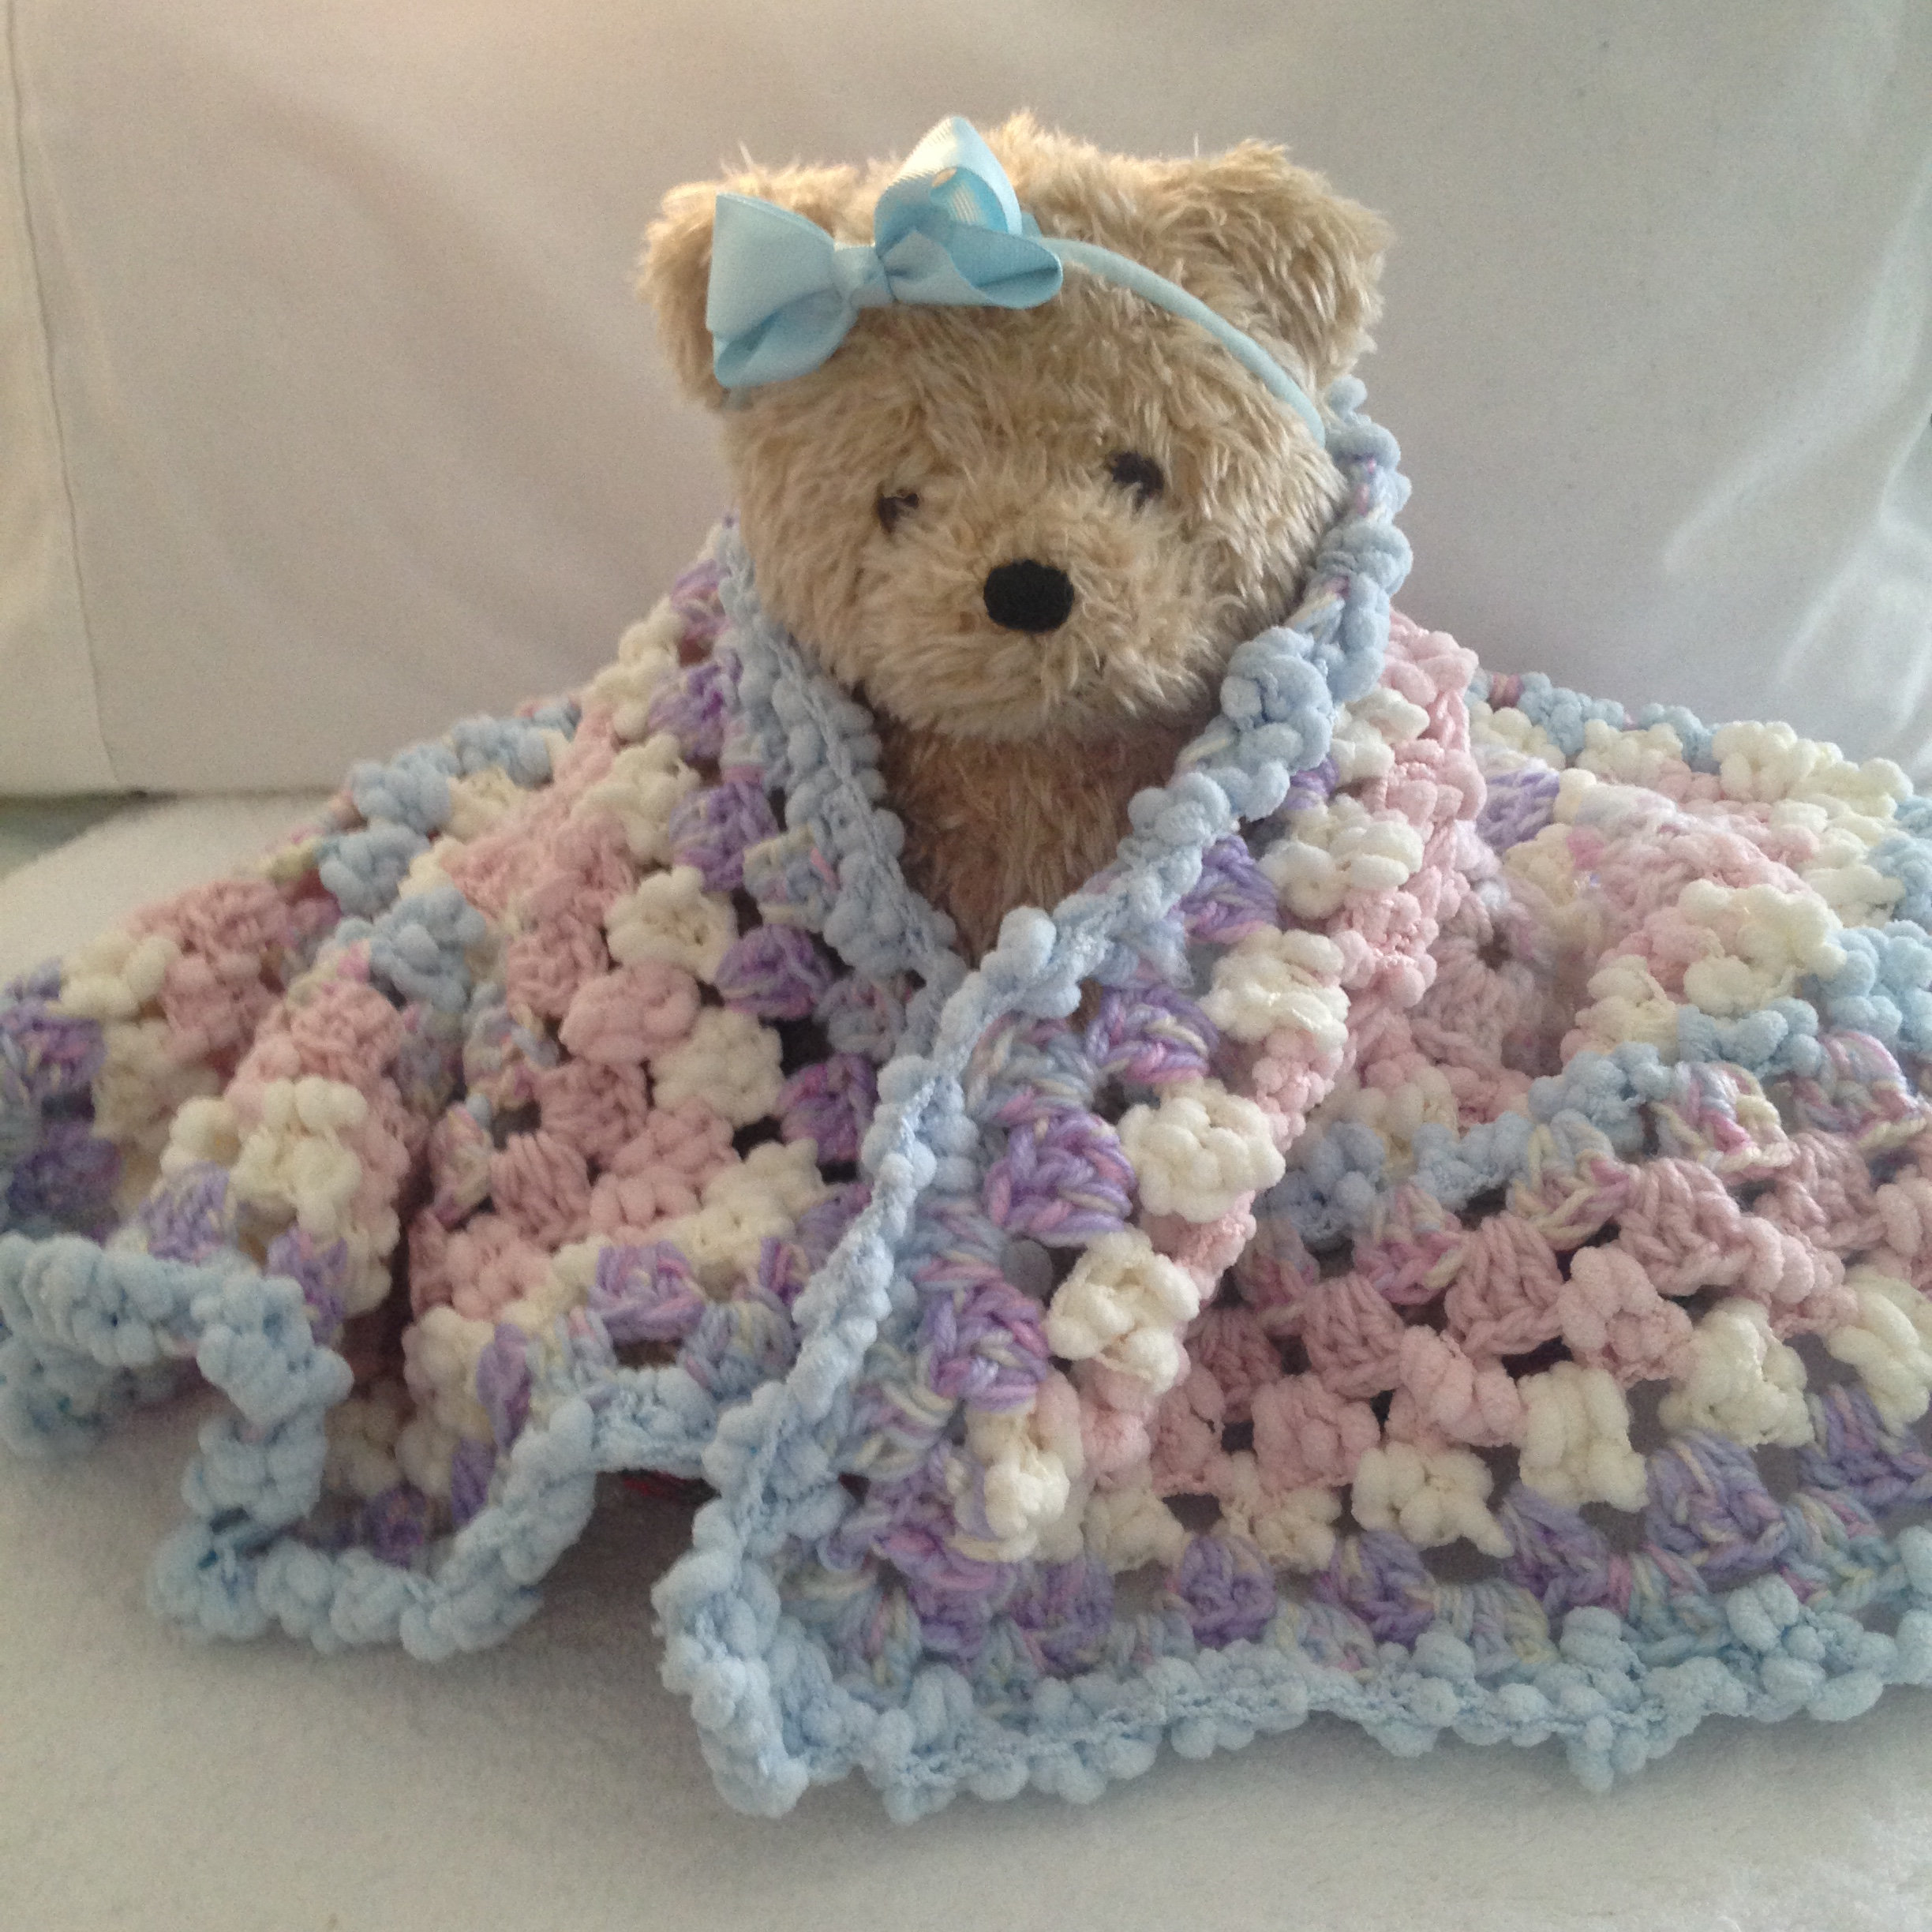 Bubba Cuddle Blankee Homemade Crochet Throw Rug For Pram Cot Or Bed 70cm